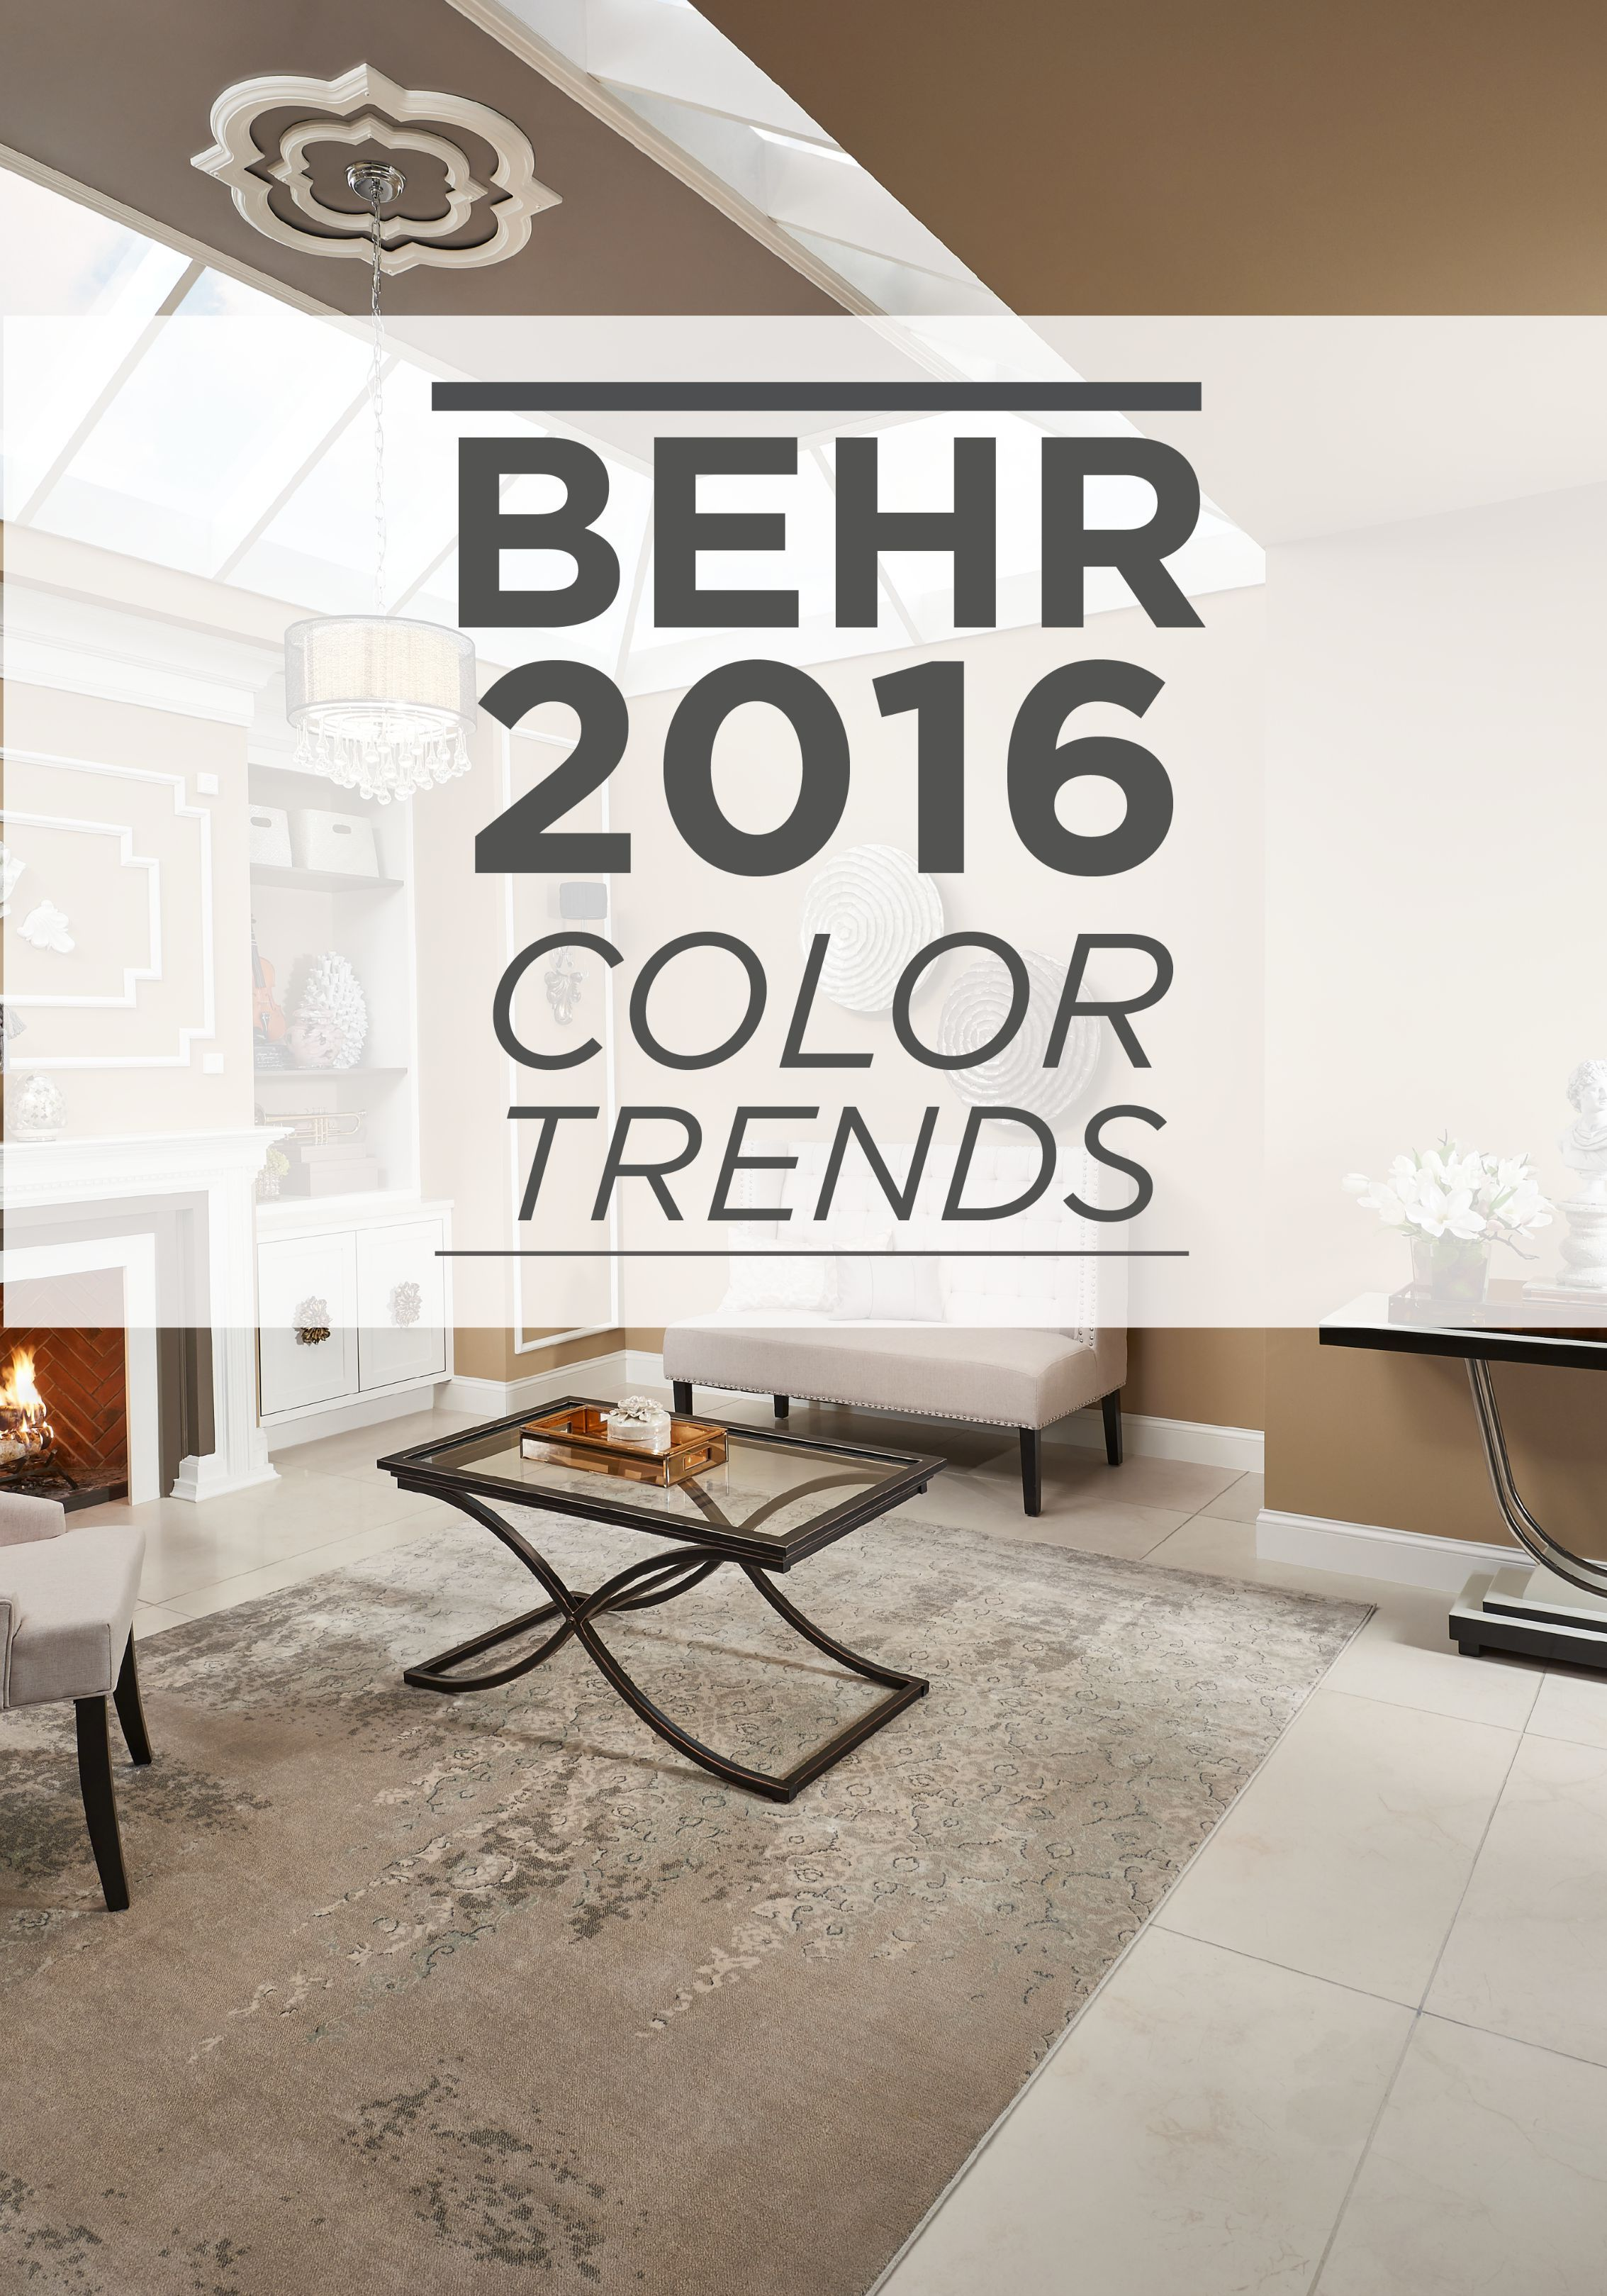 samples contemporary home interior paint sprayer colors behr painting depot luxury astronomybbs ideas